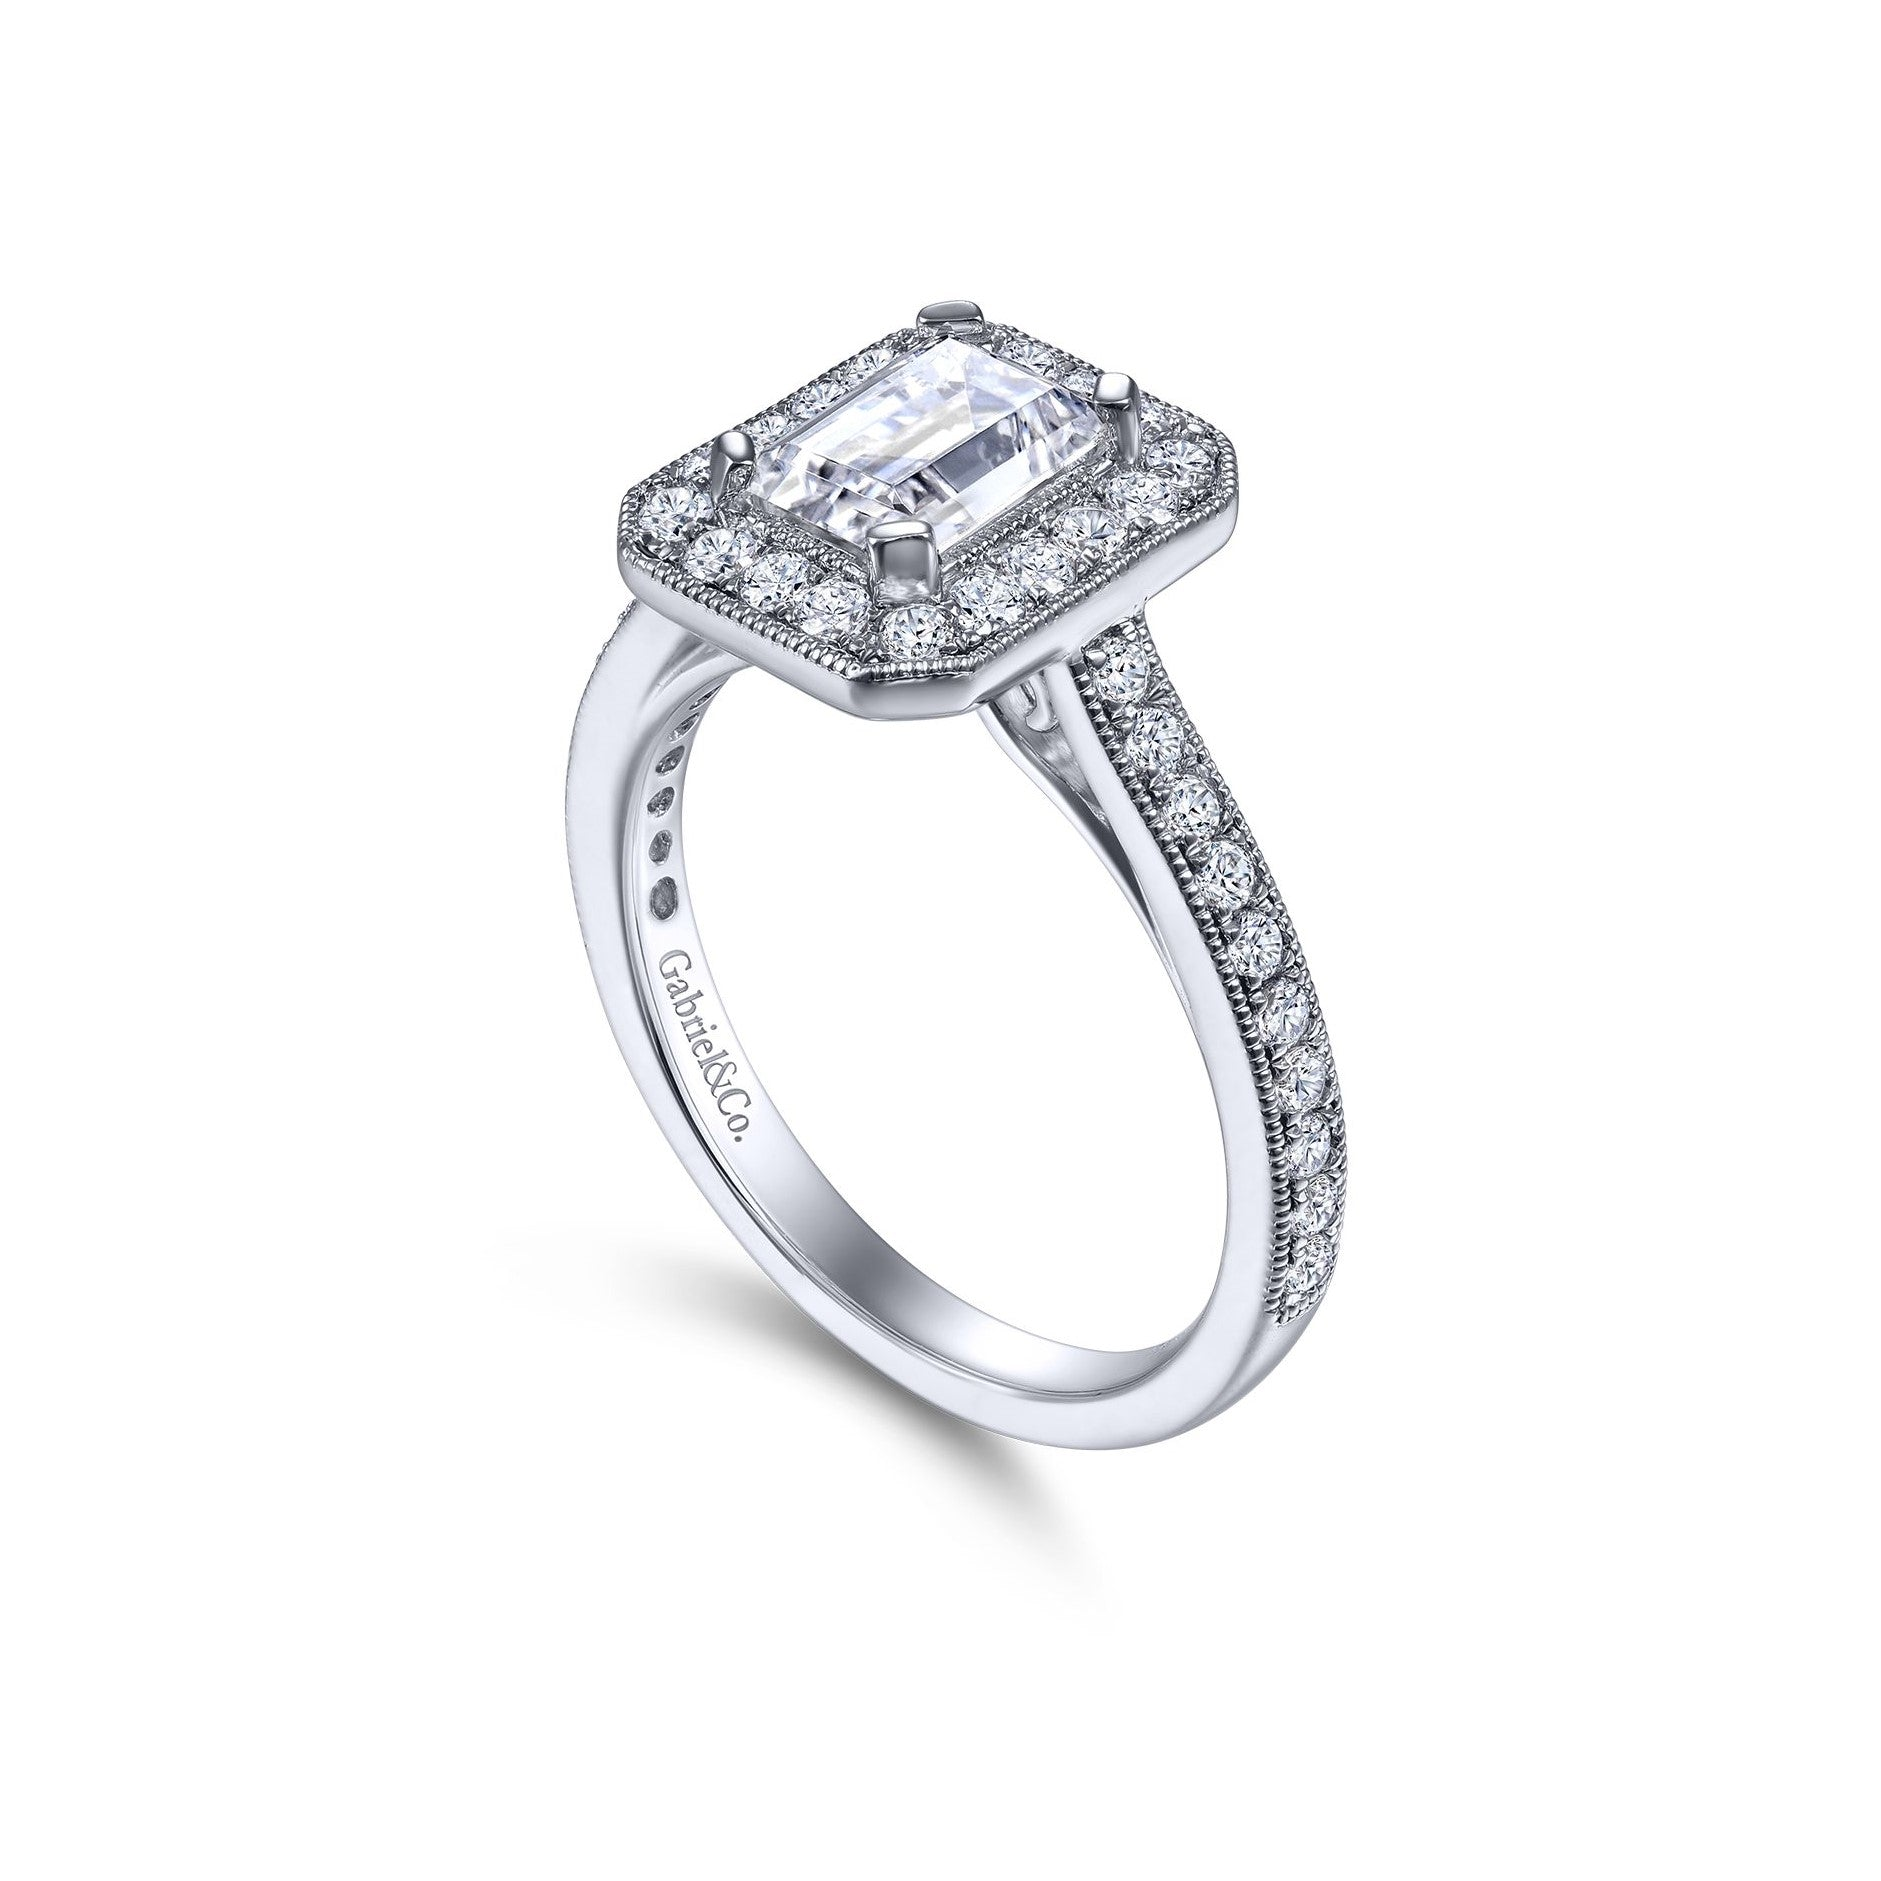 Gabriel & Co. 14k White Gold Emerald Cut Halo Diamond & Milgrain Engagement Ring